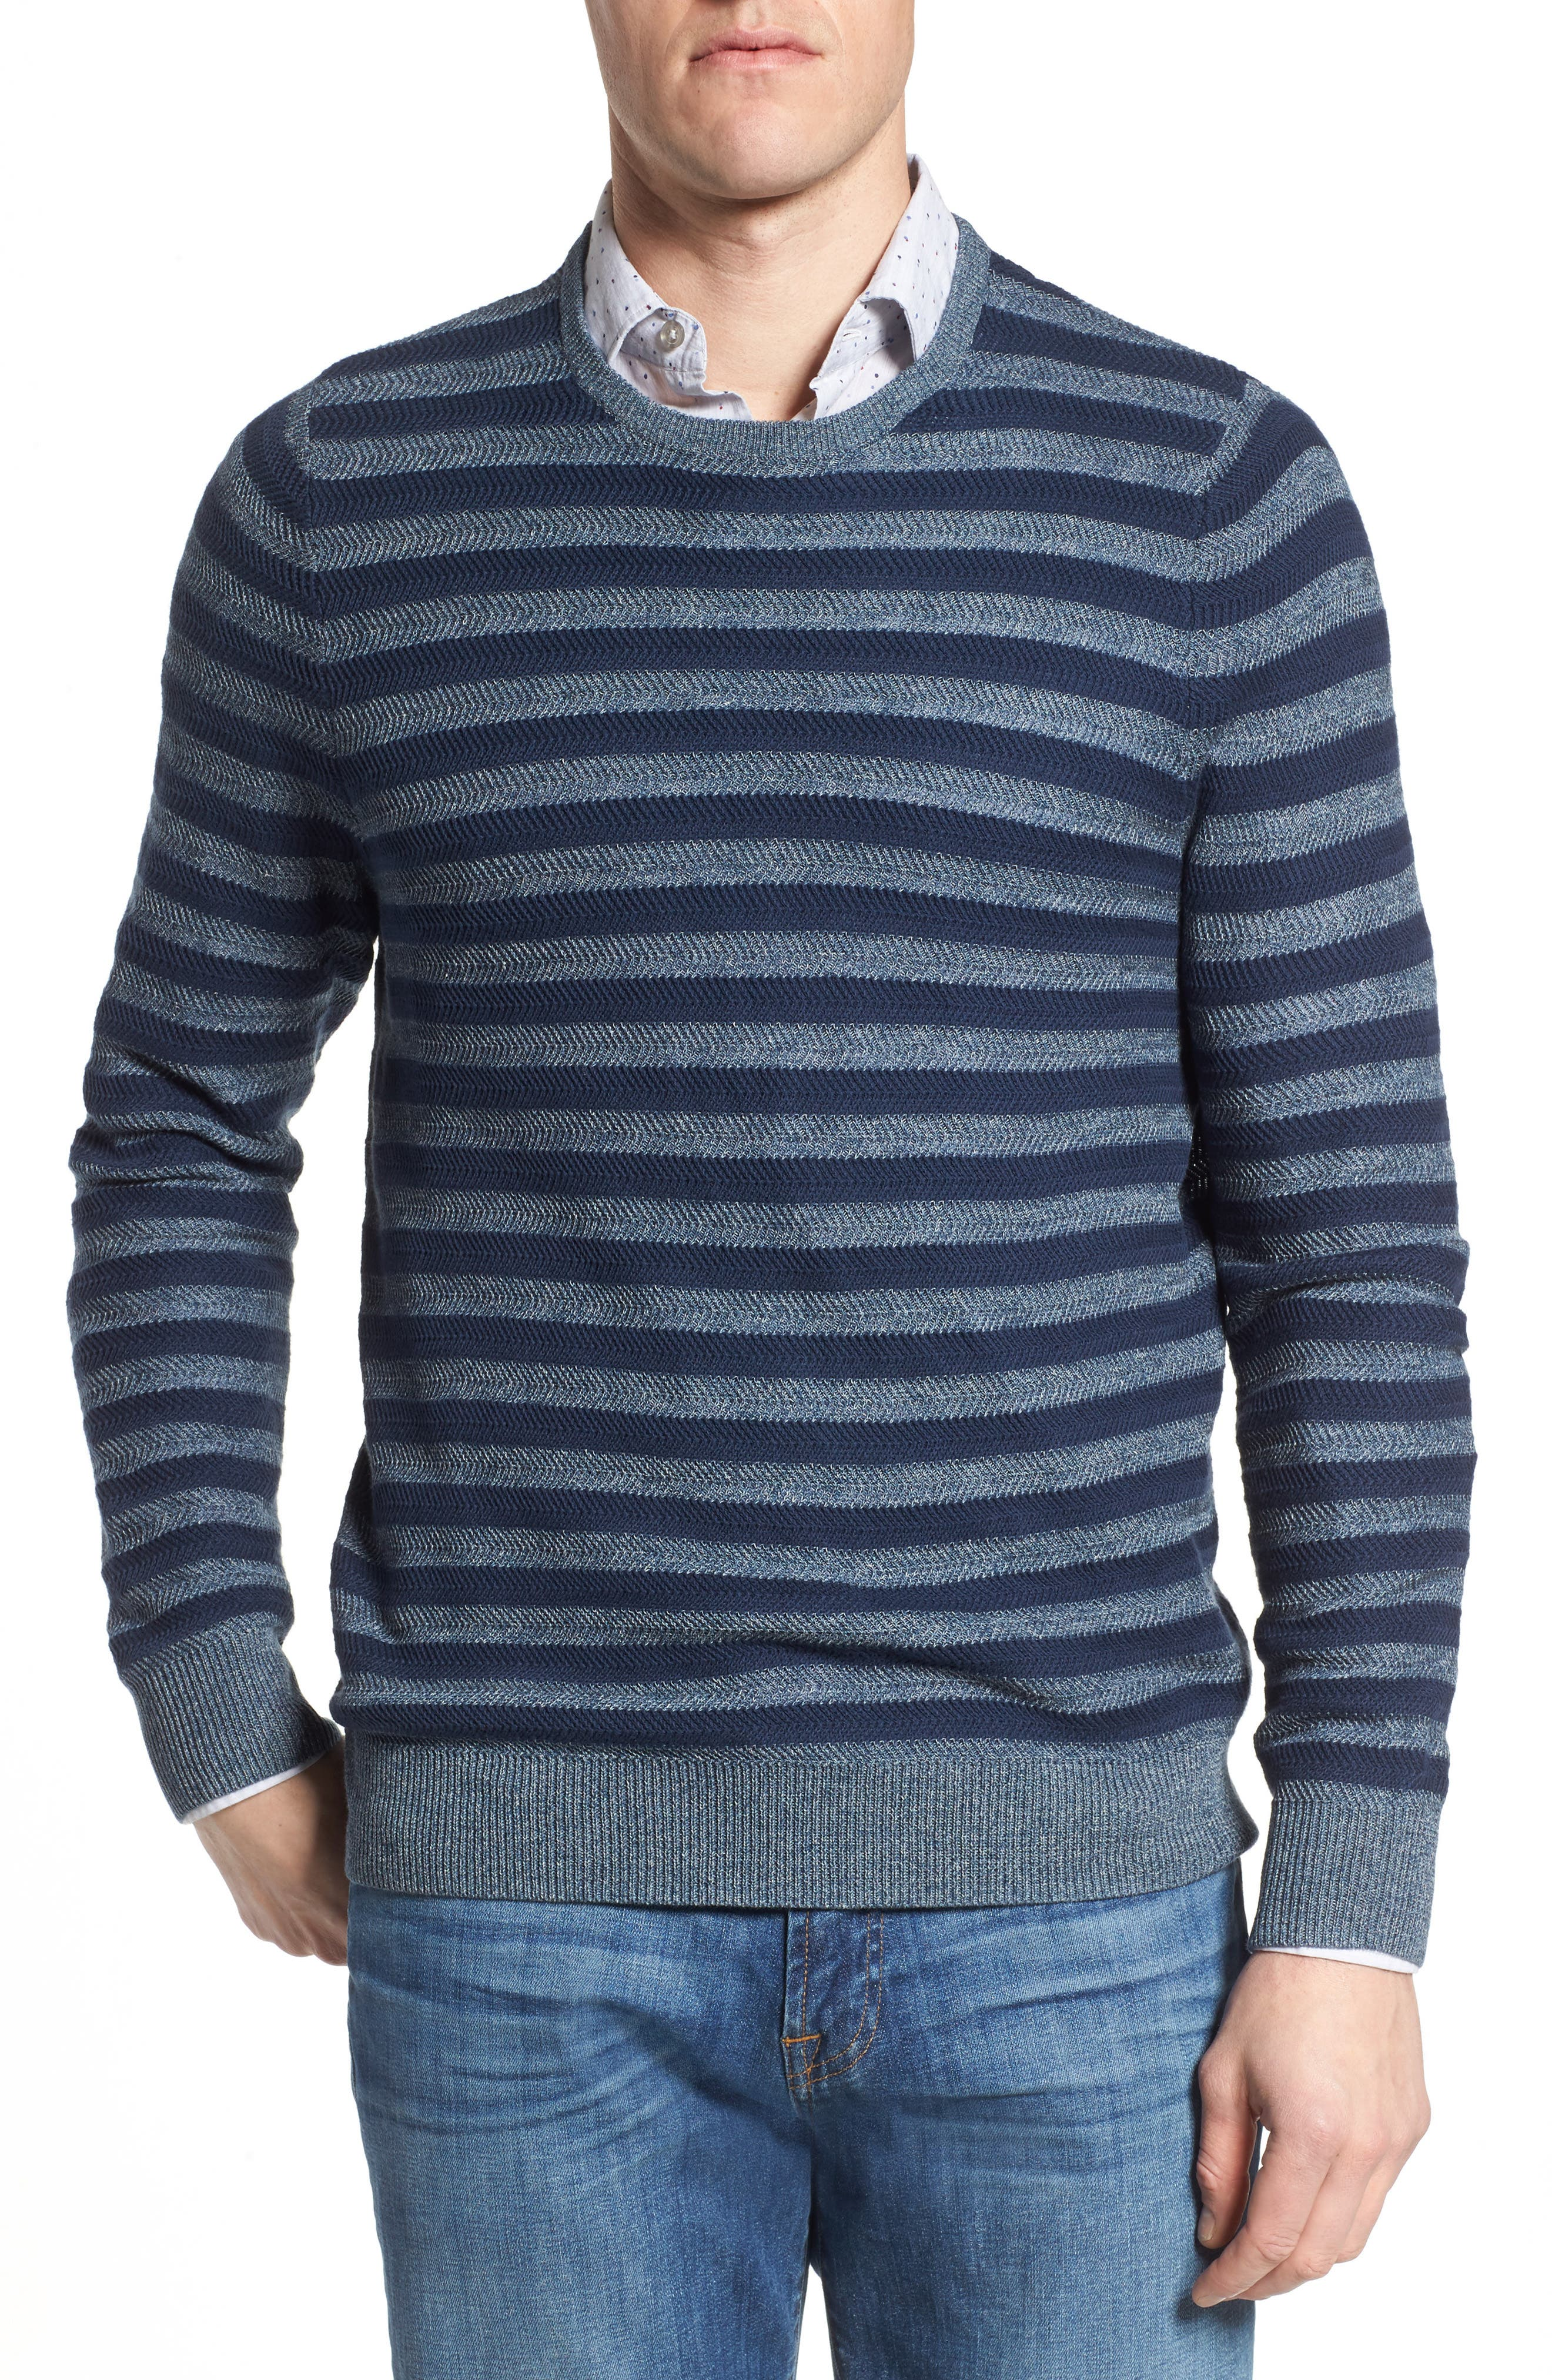 Stripe Sweater,                             Main thumbnail 1, color,                             410